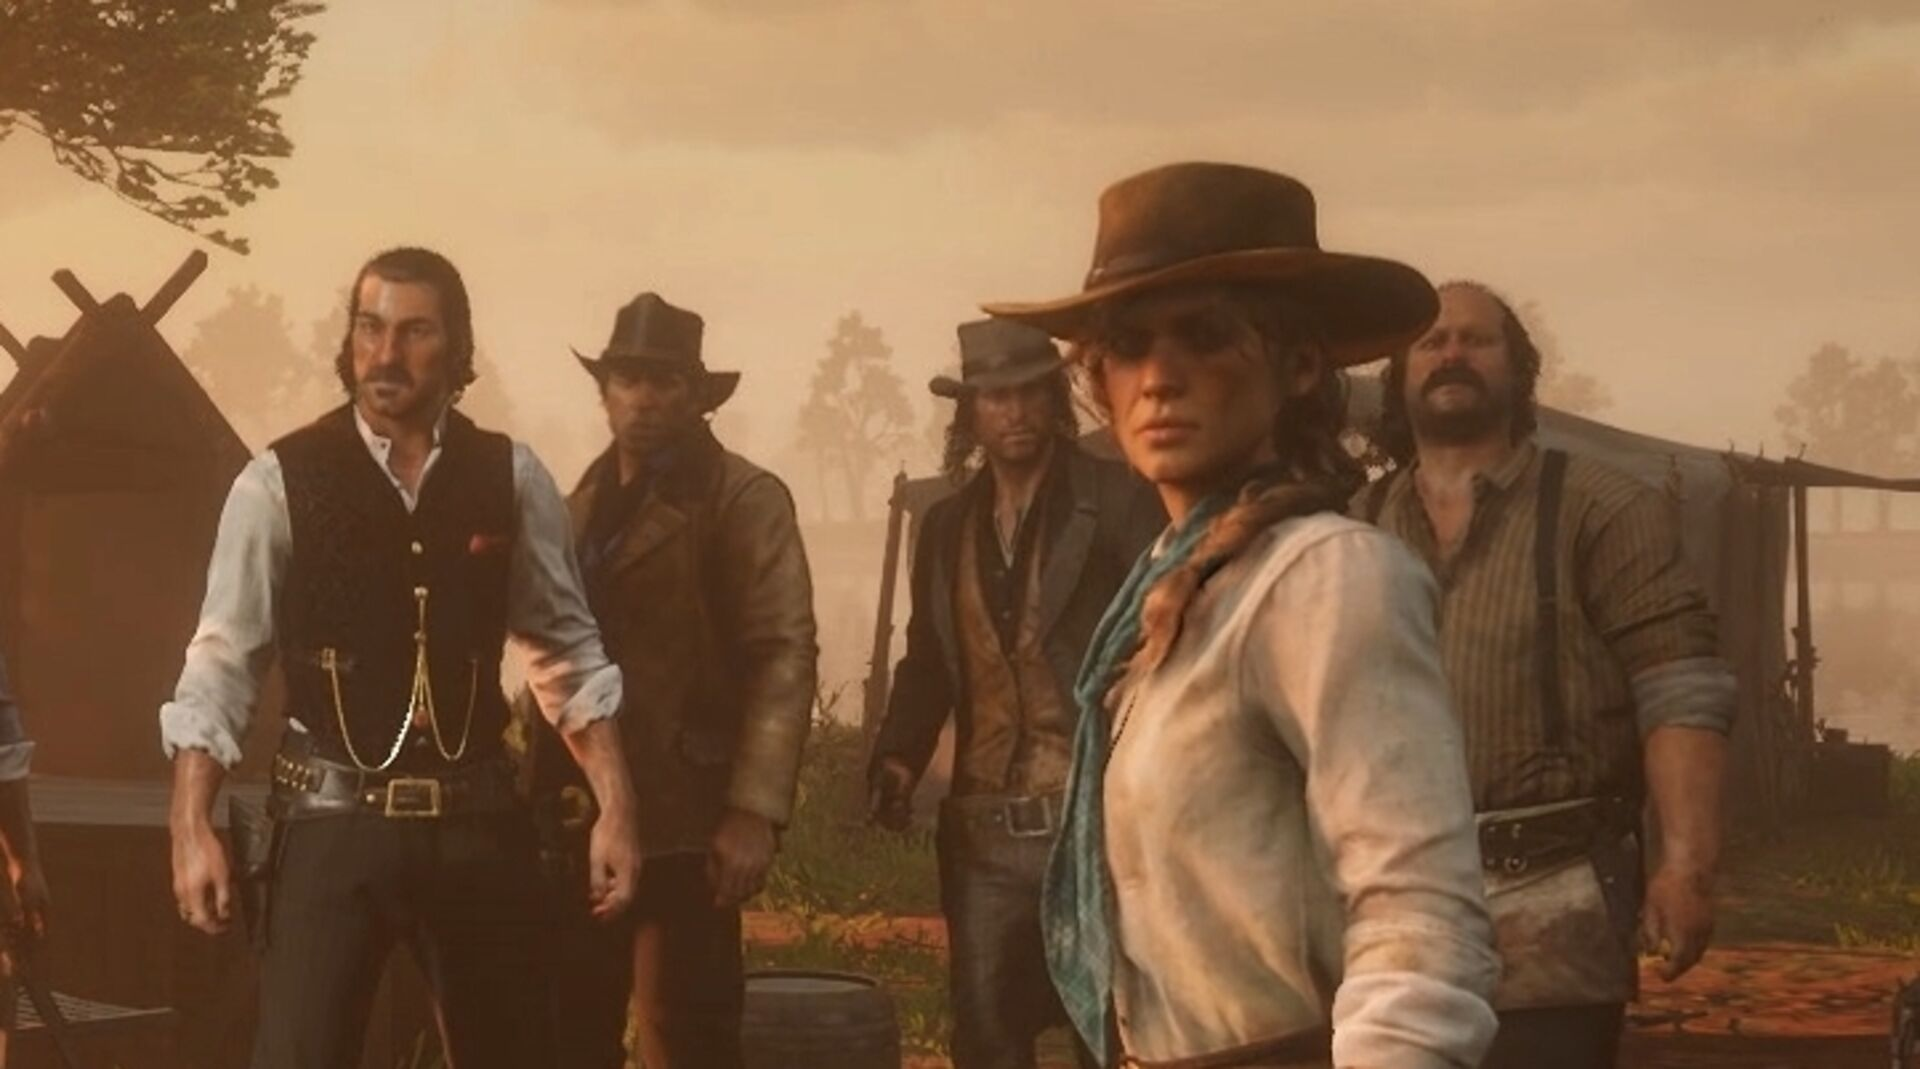 Rockstar reveals Red Dead Redemption 2 supporting cast